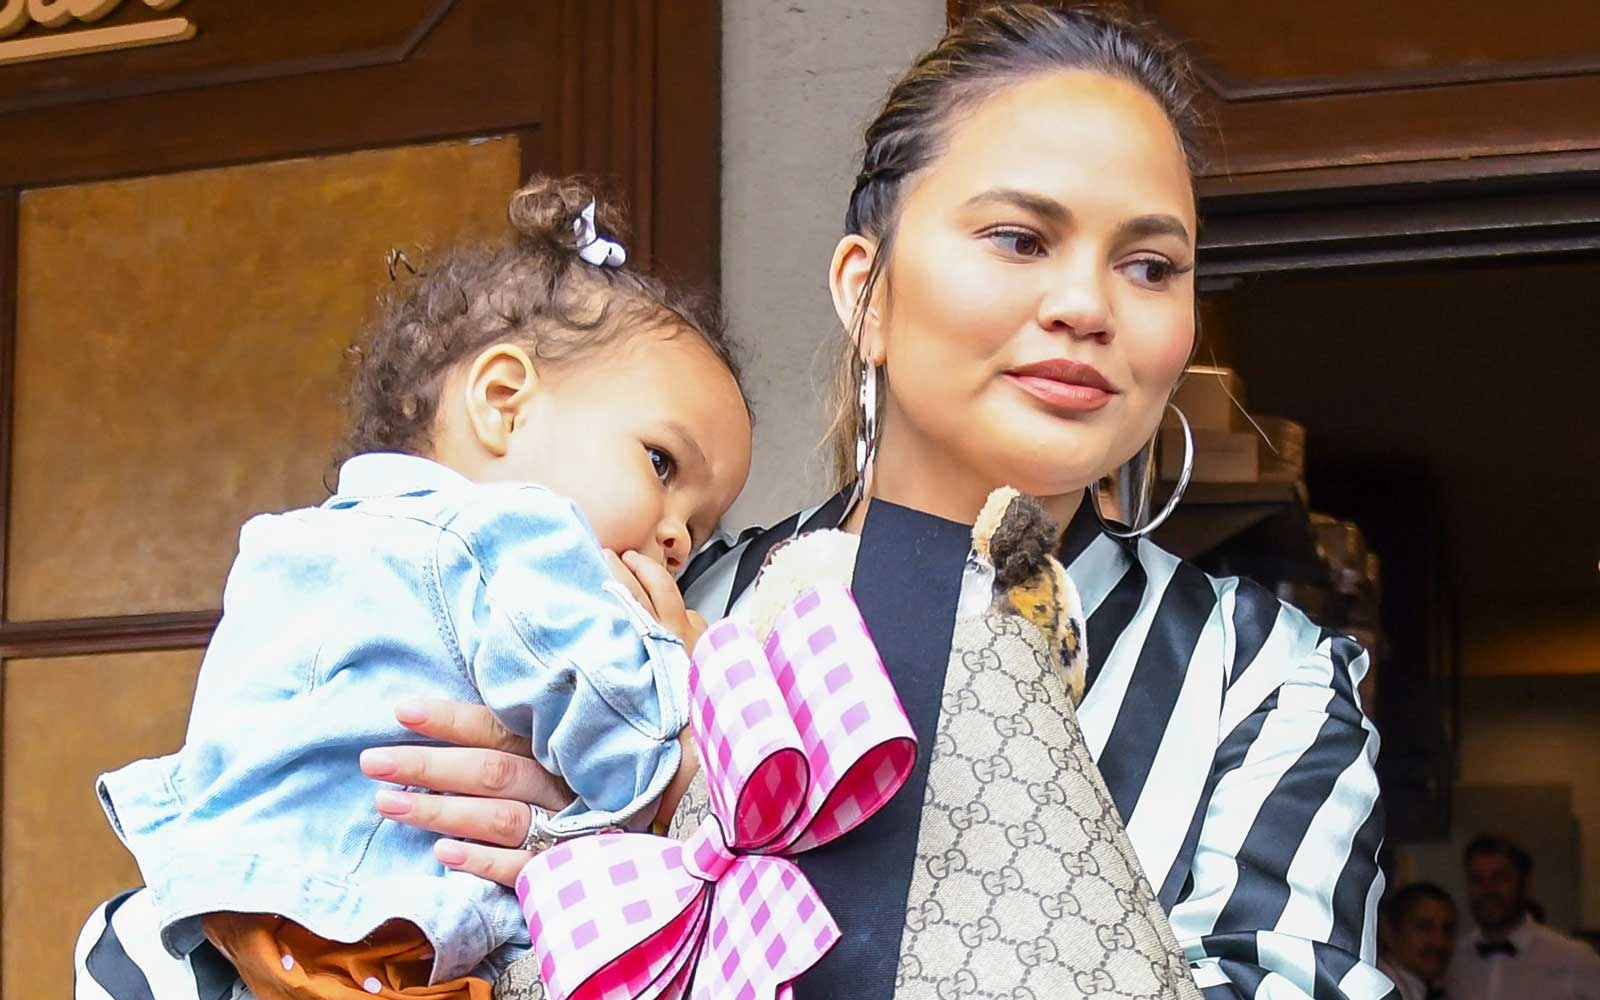 Passport Los Angeles >> Chrissy Teigen Just Took a 15-hour Flight With Her Kids and the Tweets Are Oh so Relatable ...